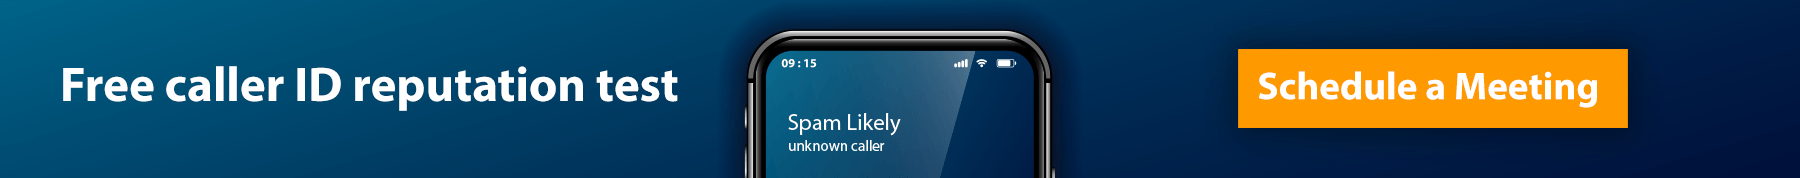 Free caller ID reputation test